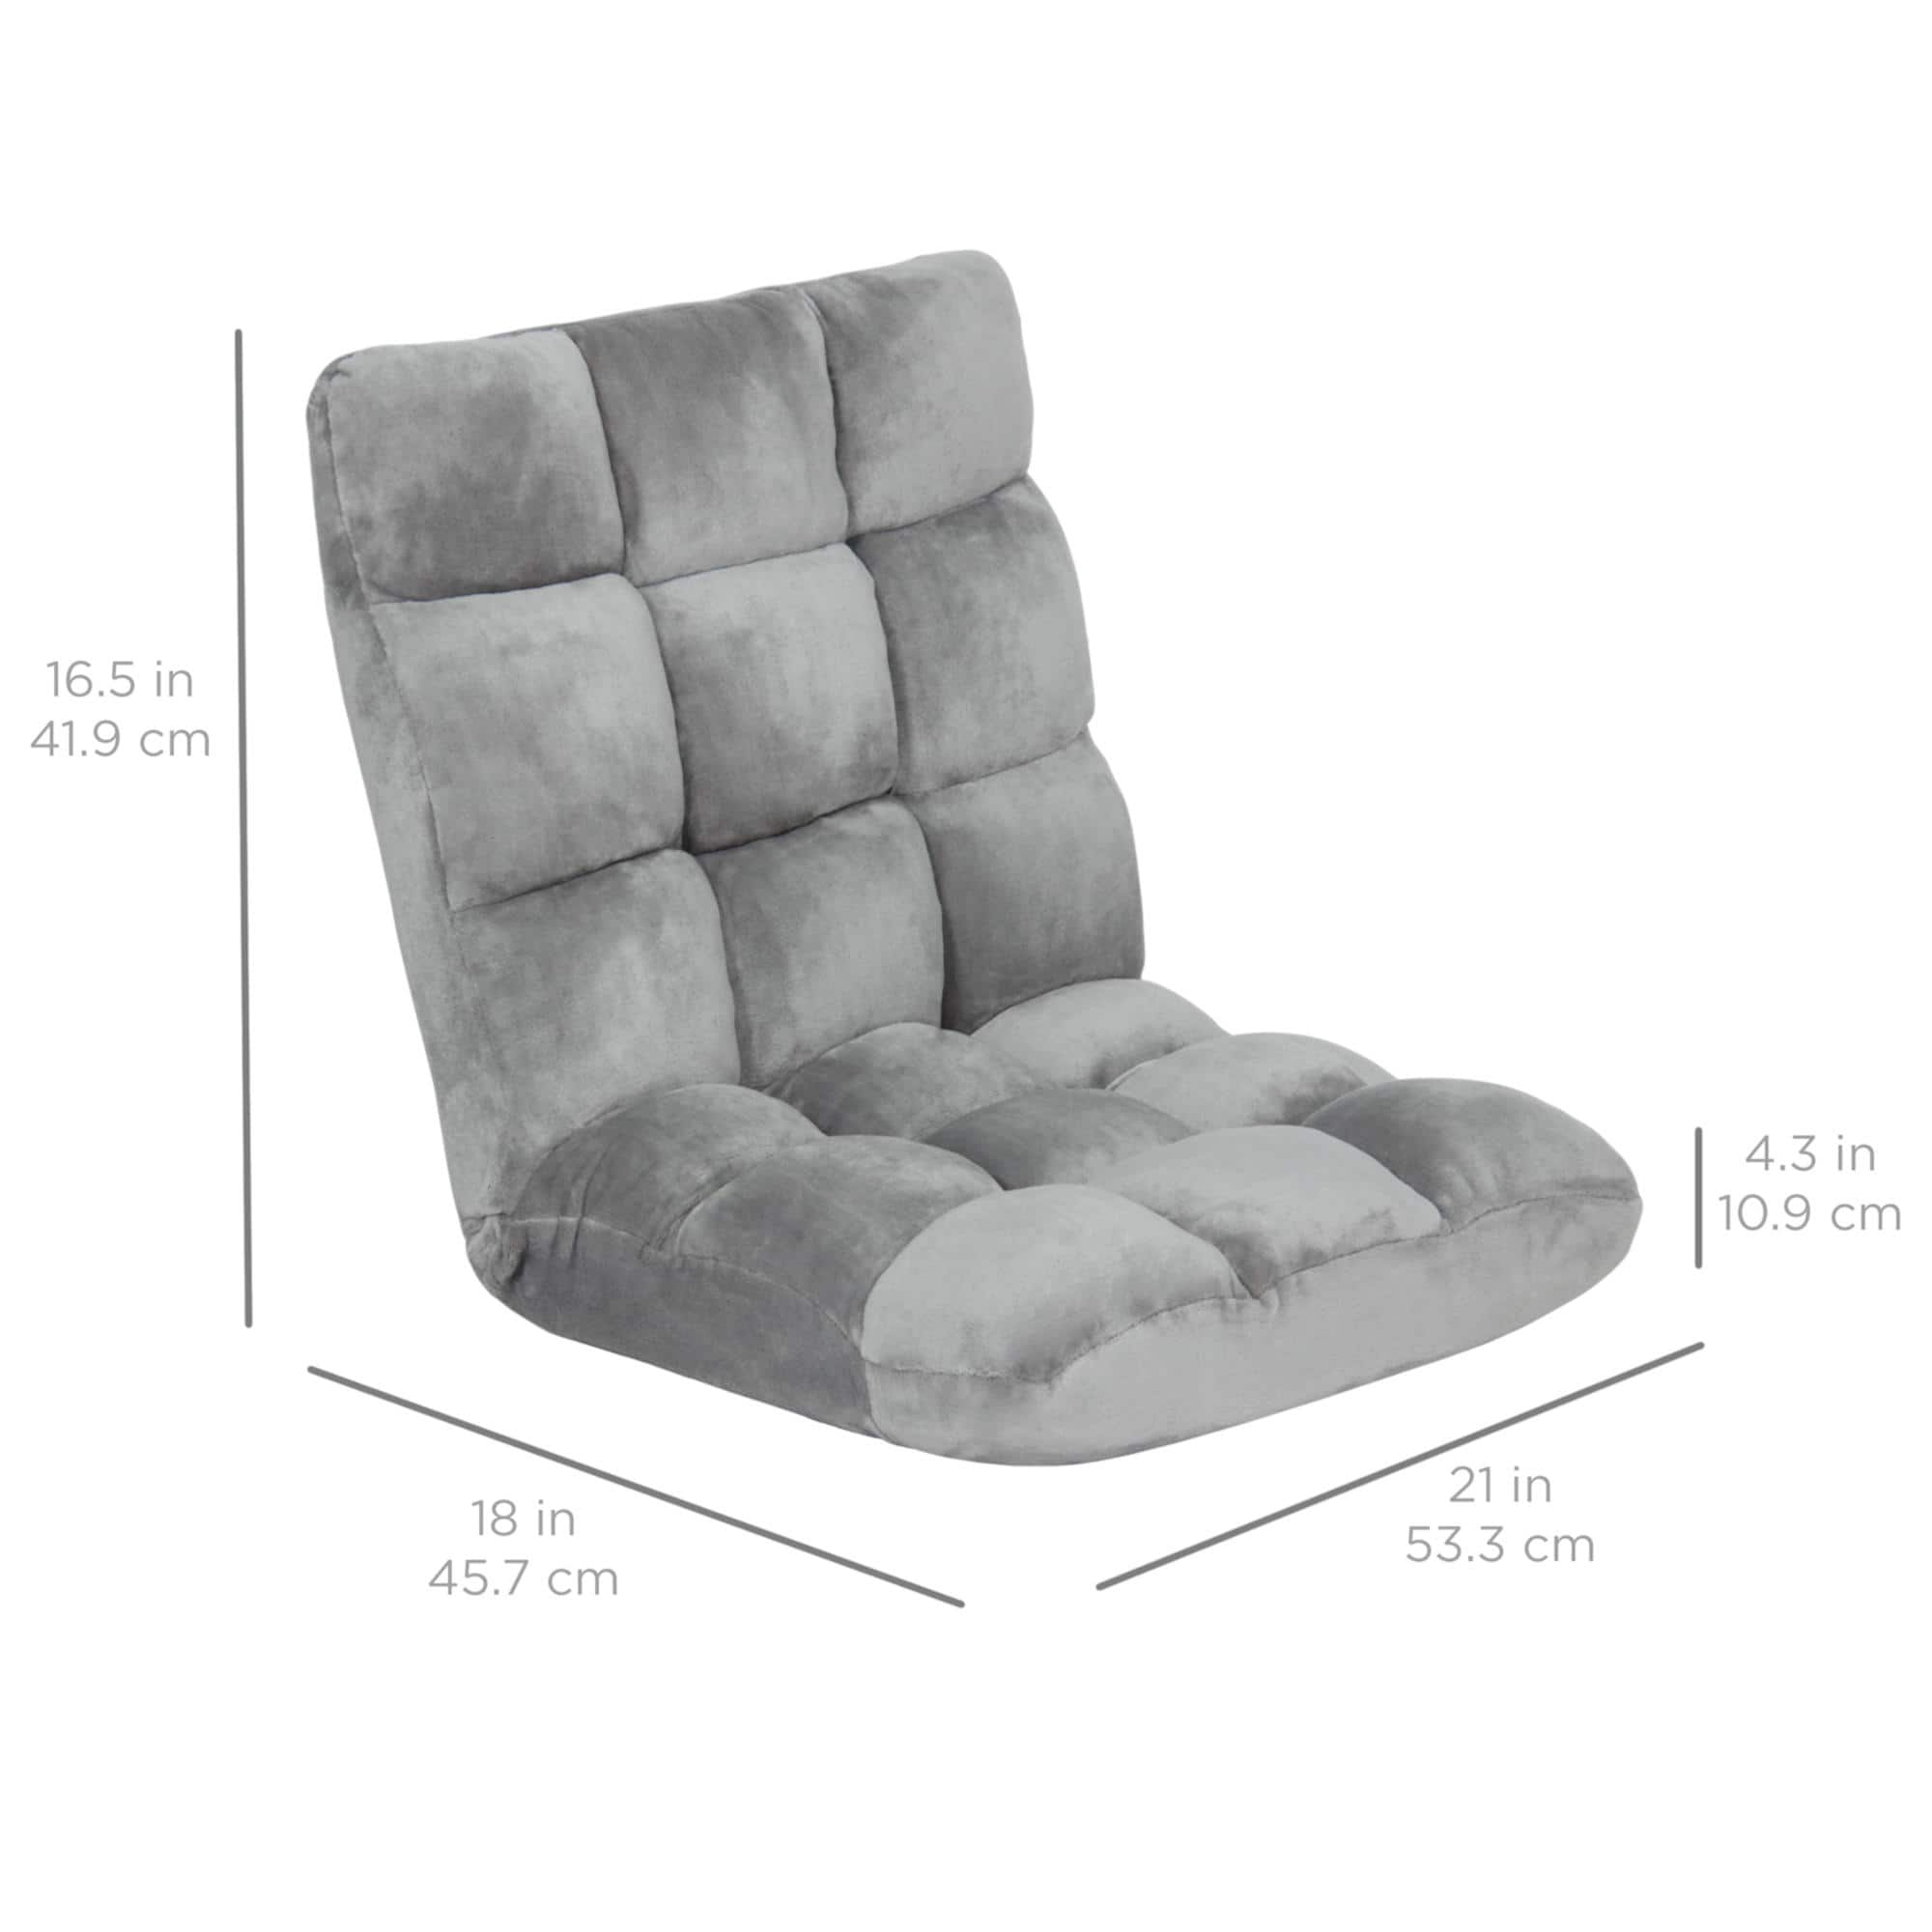 Best Choice Memory Foam Cushioned Gaming Chair $34.99 + Free S/H